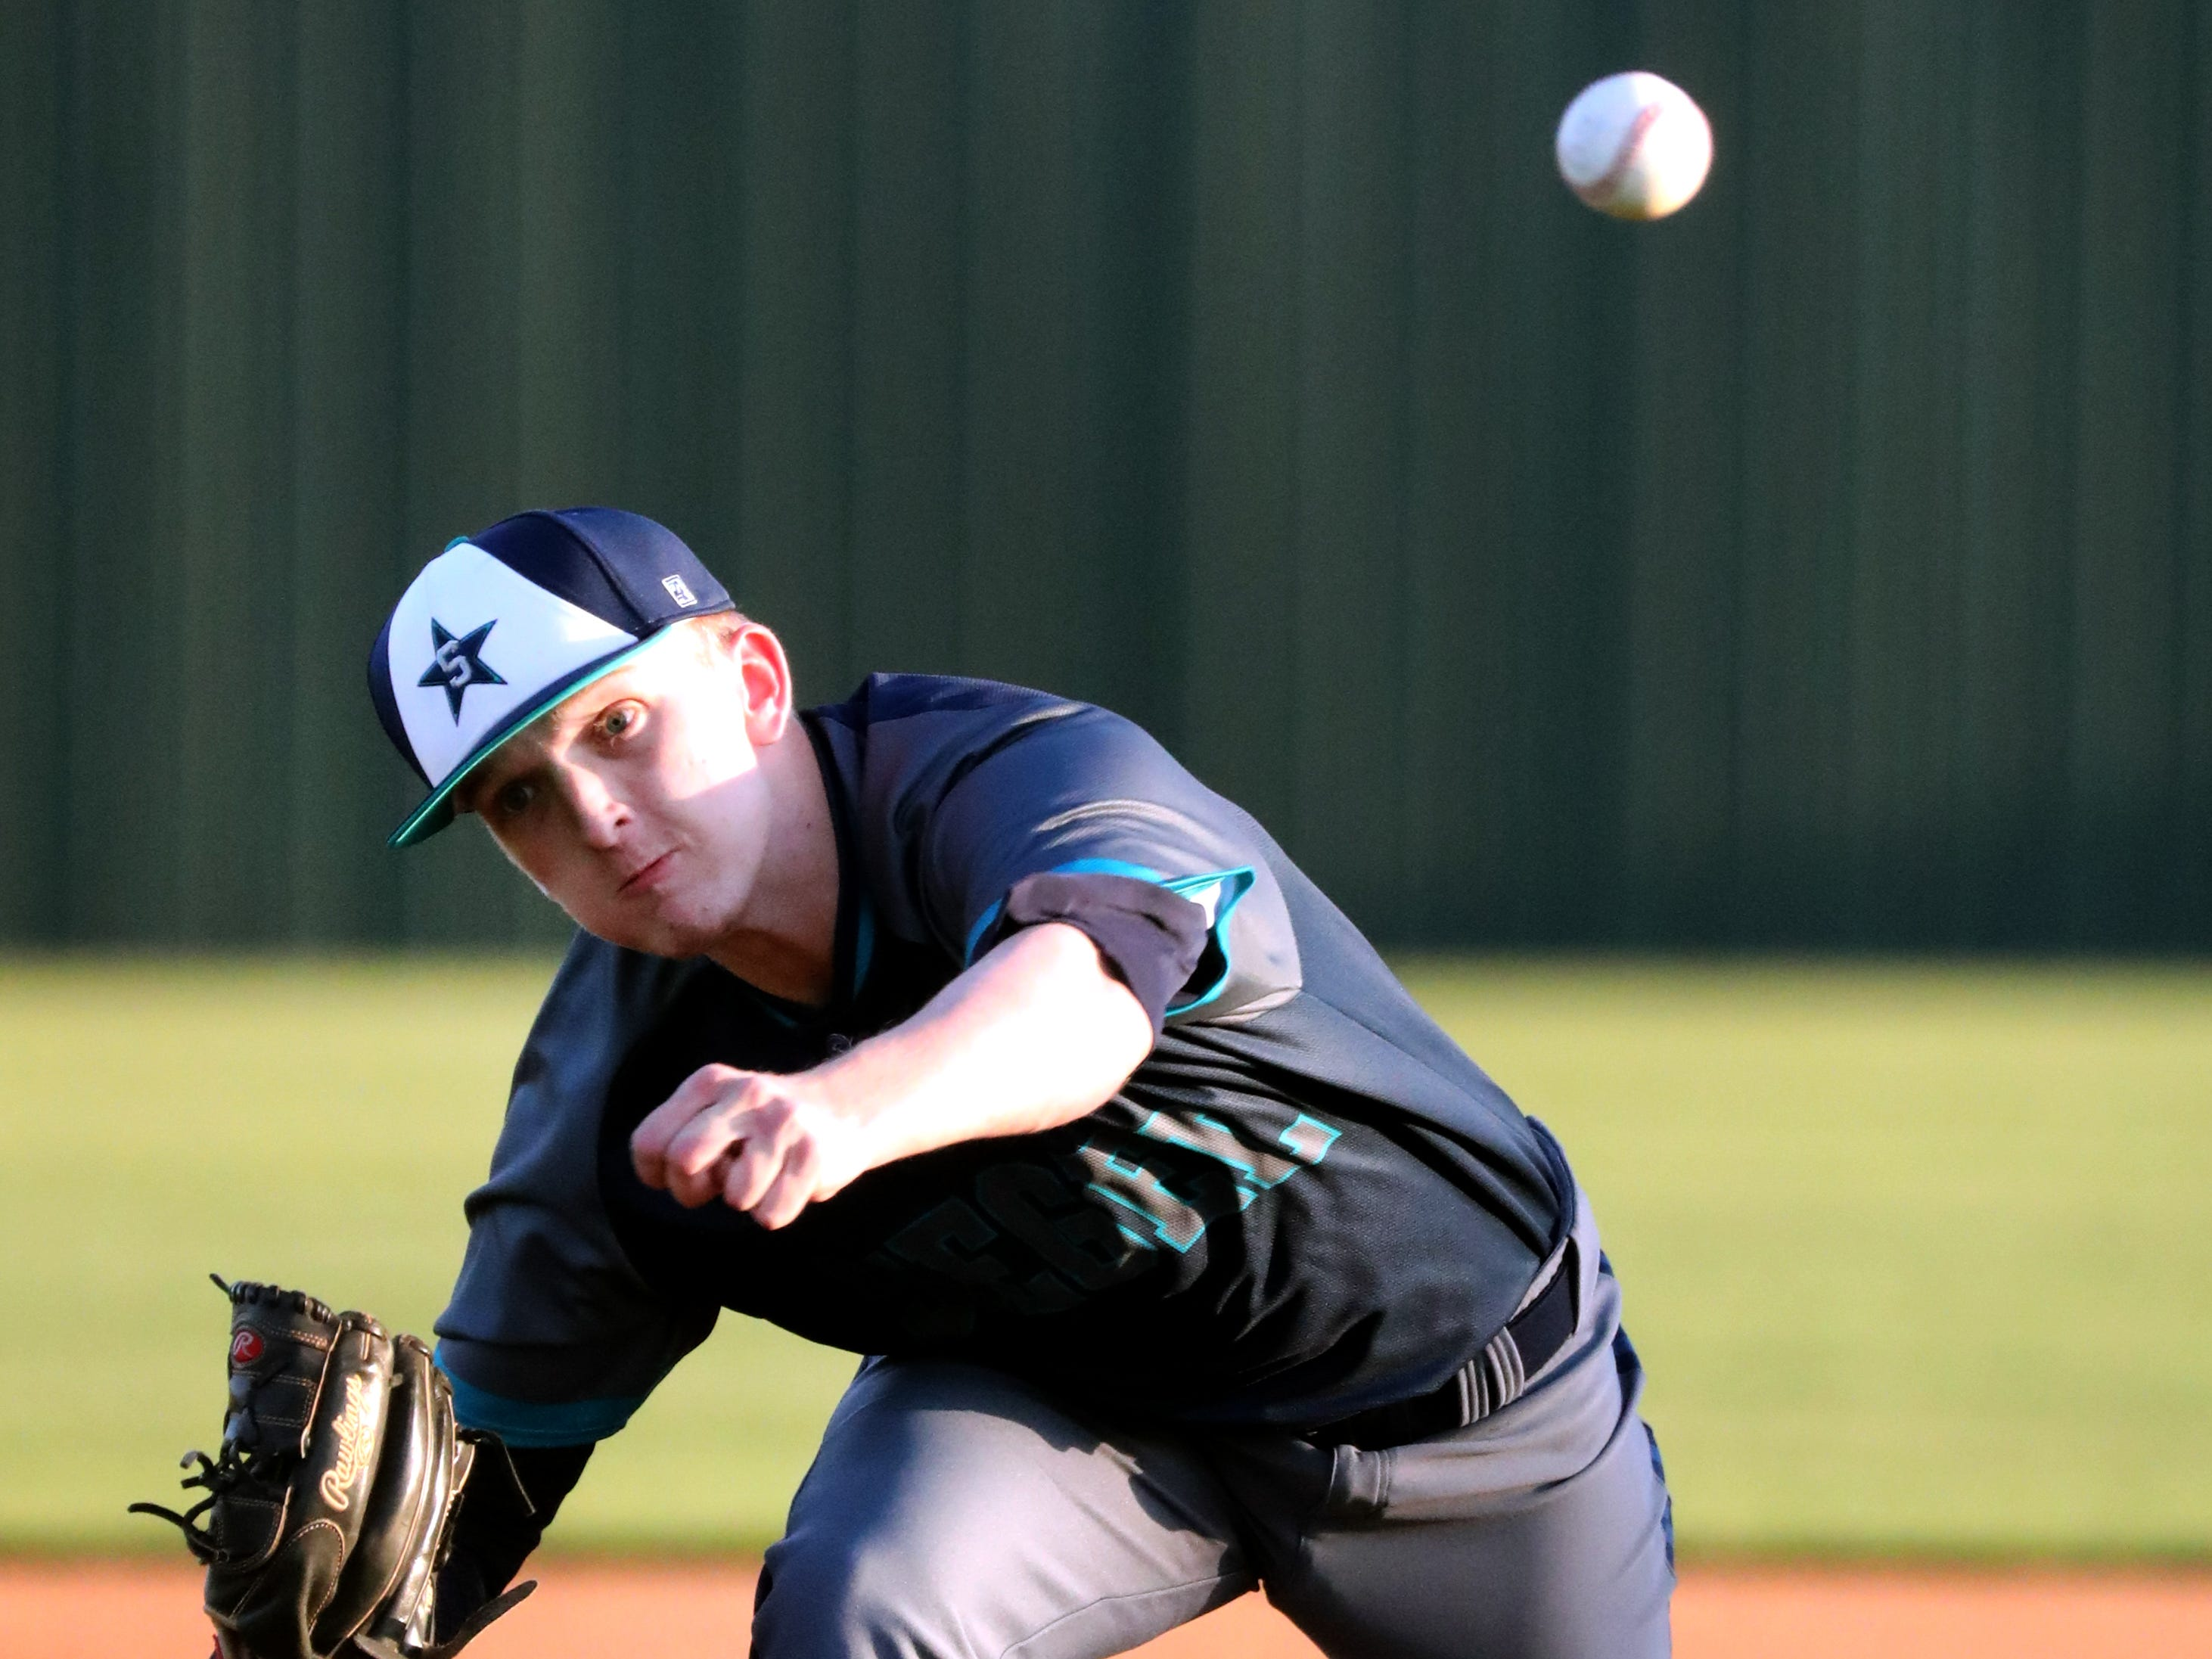 Siegel's Jaden Lasley (17) pitches during the game against Blackman on Monday, March 11, 2019.